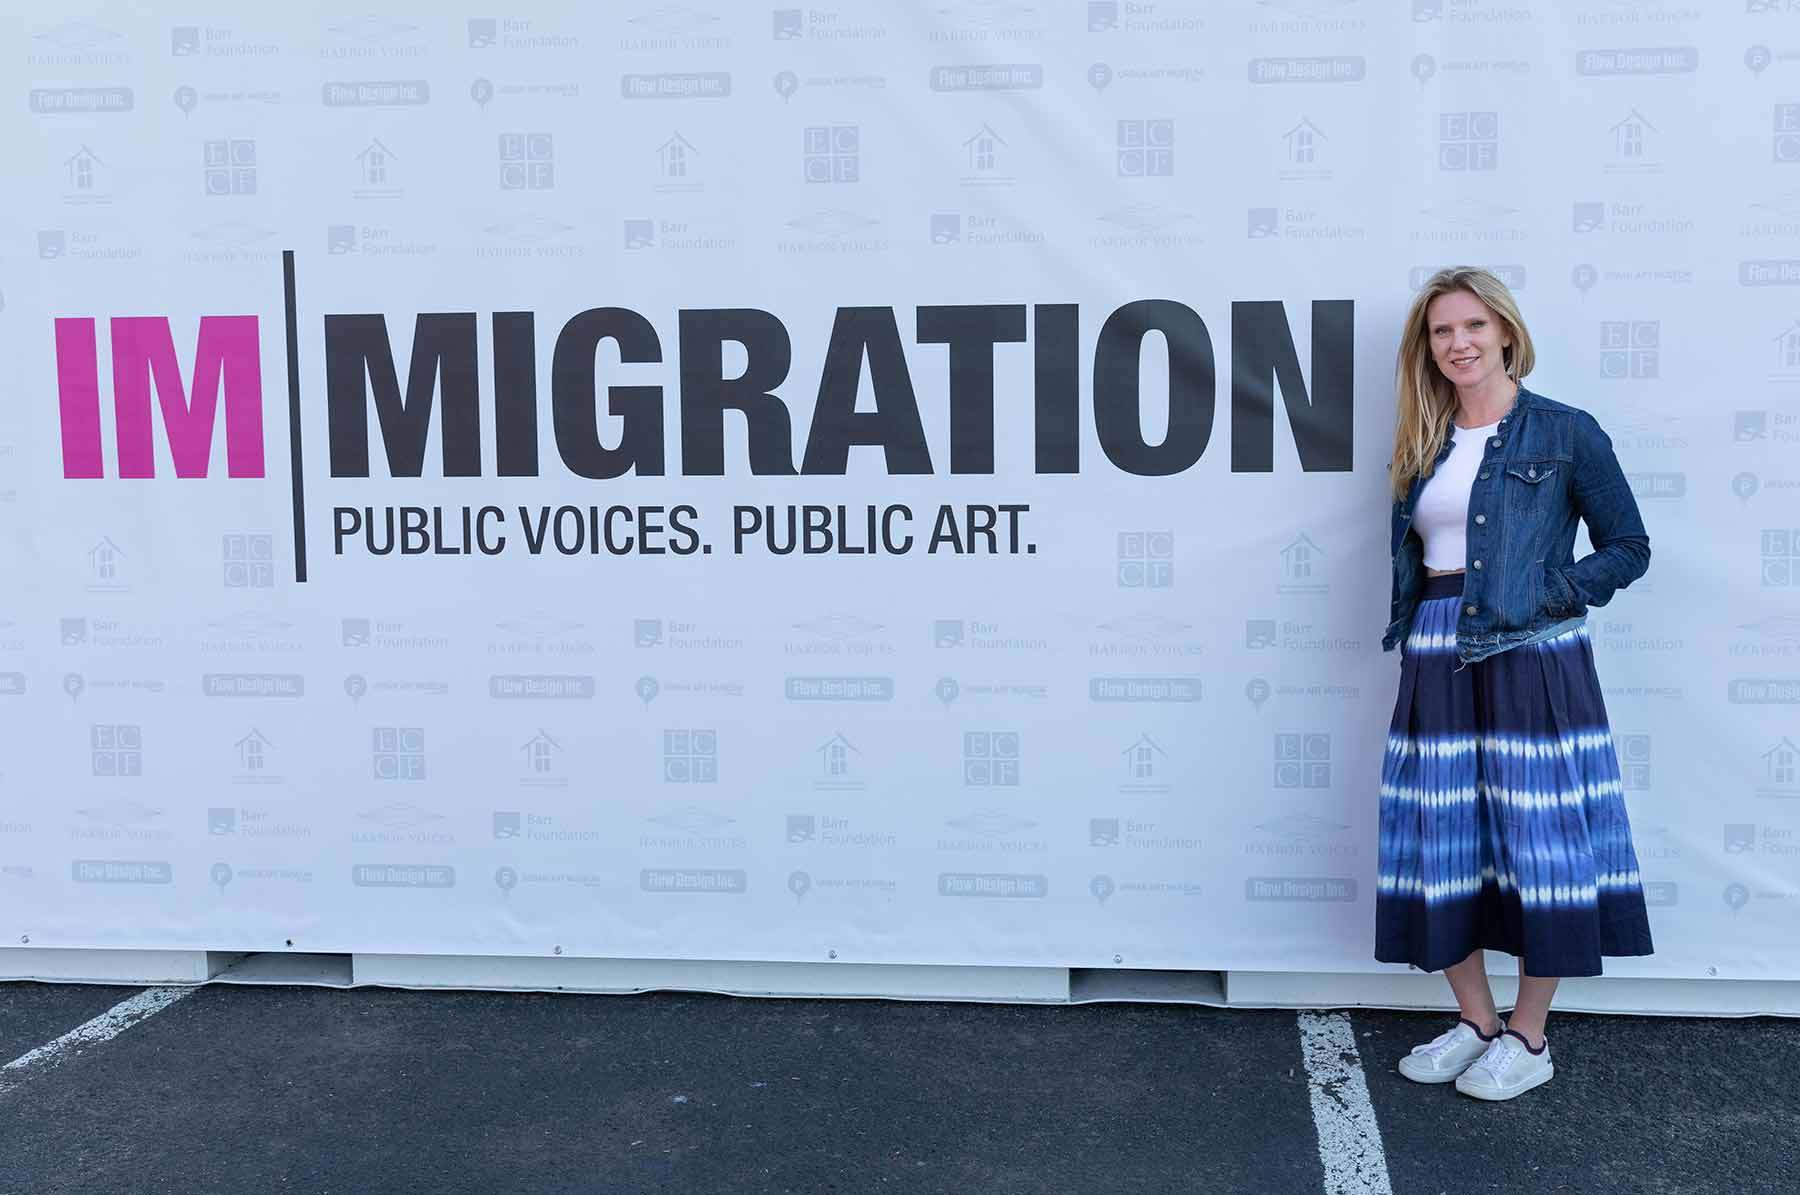 im|migration public voices